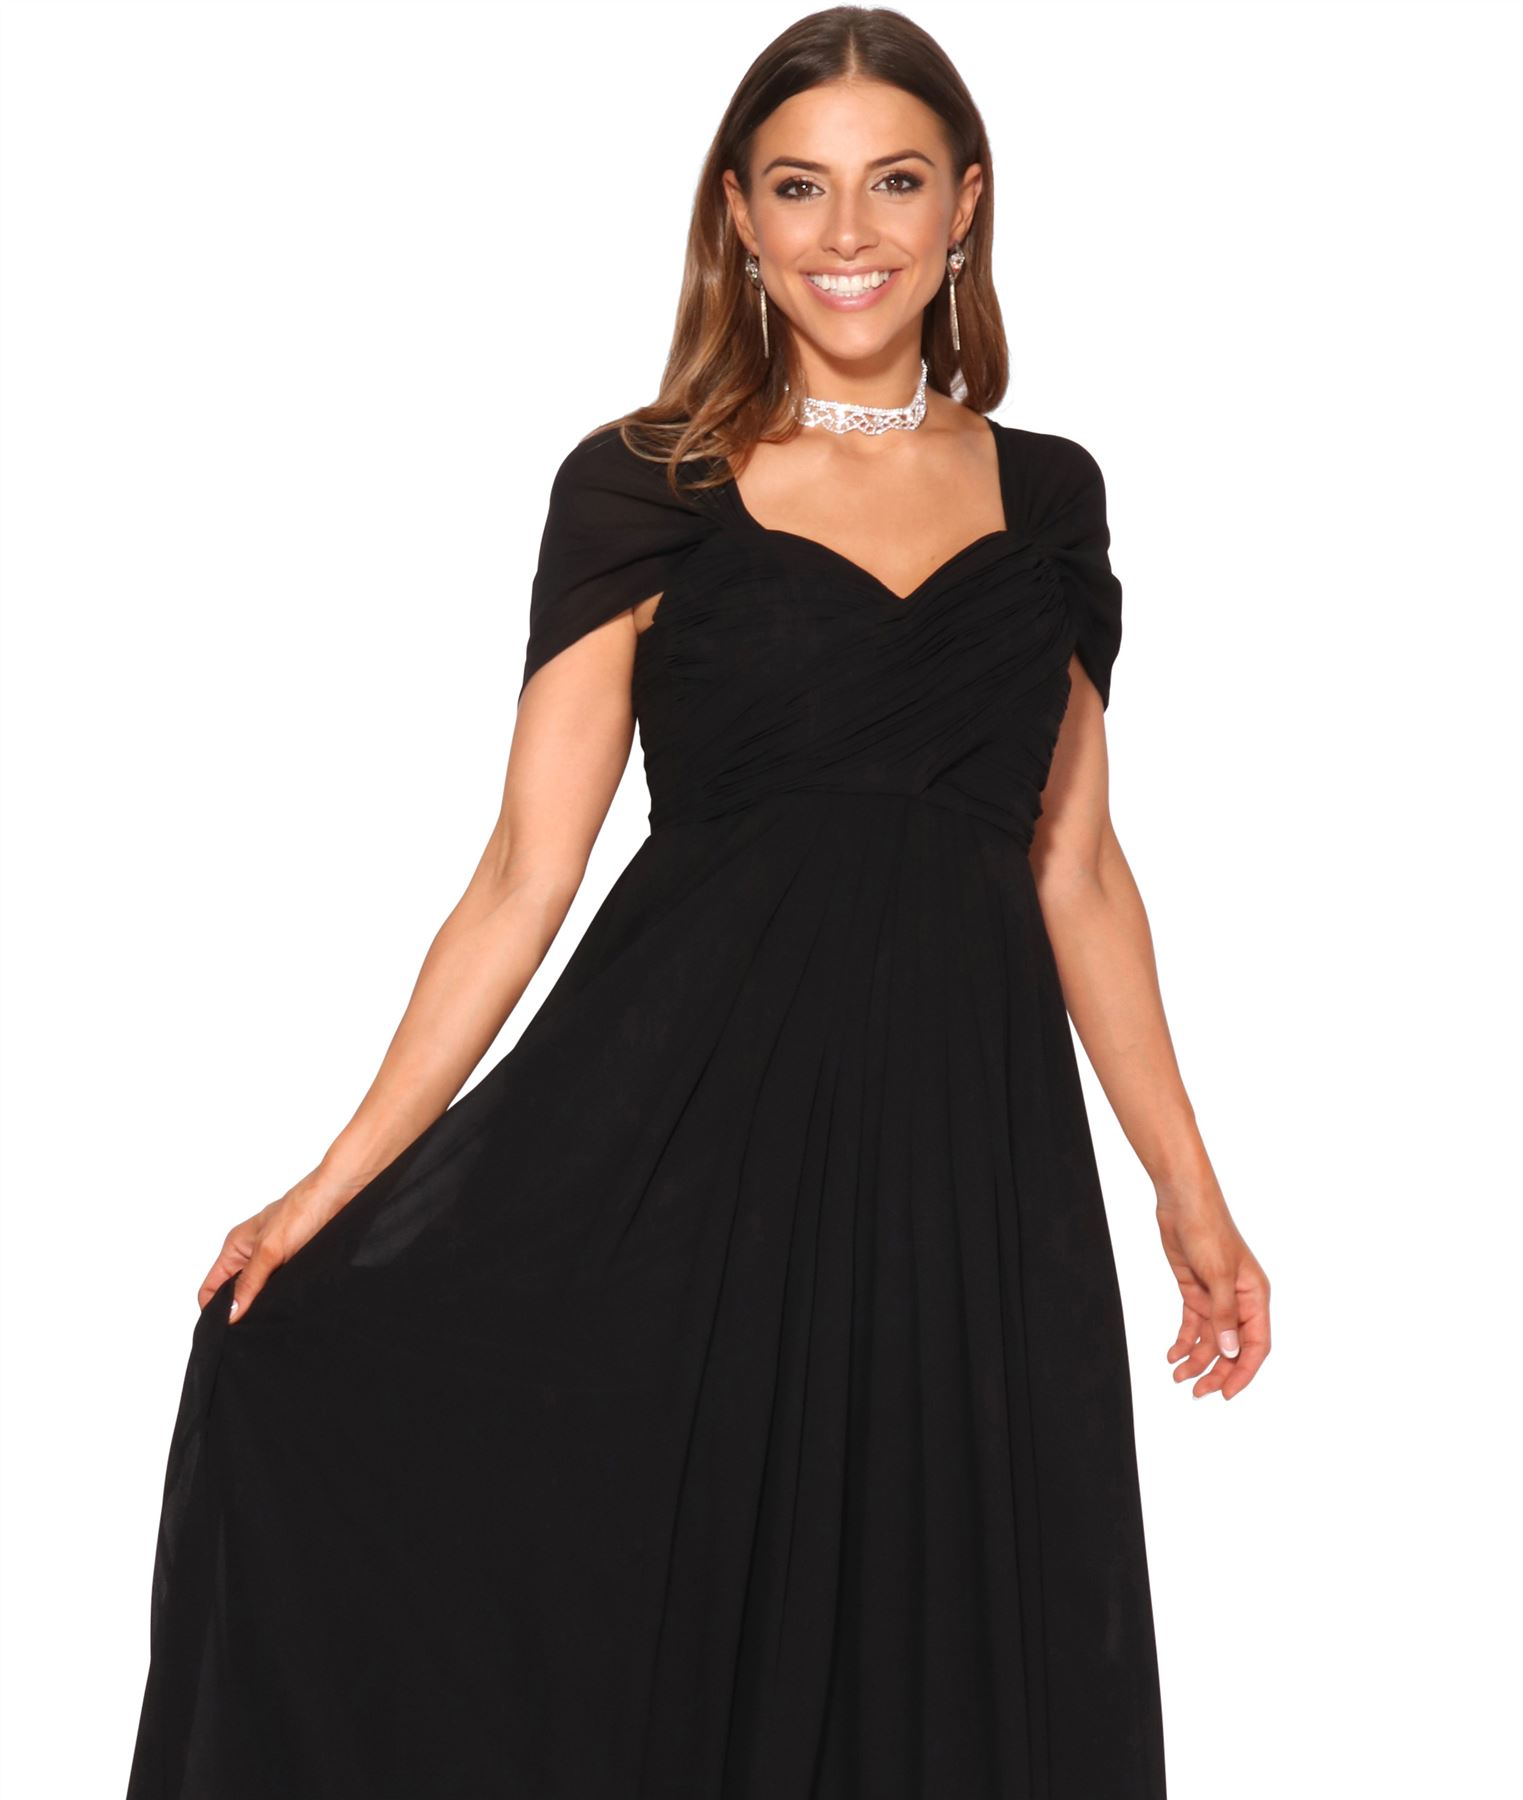 Womens-Formal-Evening-Wedding-Maxi-Prom-Dress-Long-On-Off-Shoulder-Ball-Gown thumbnail 13